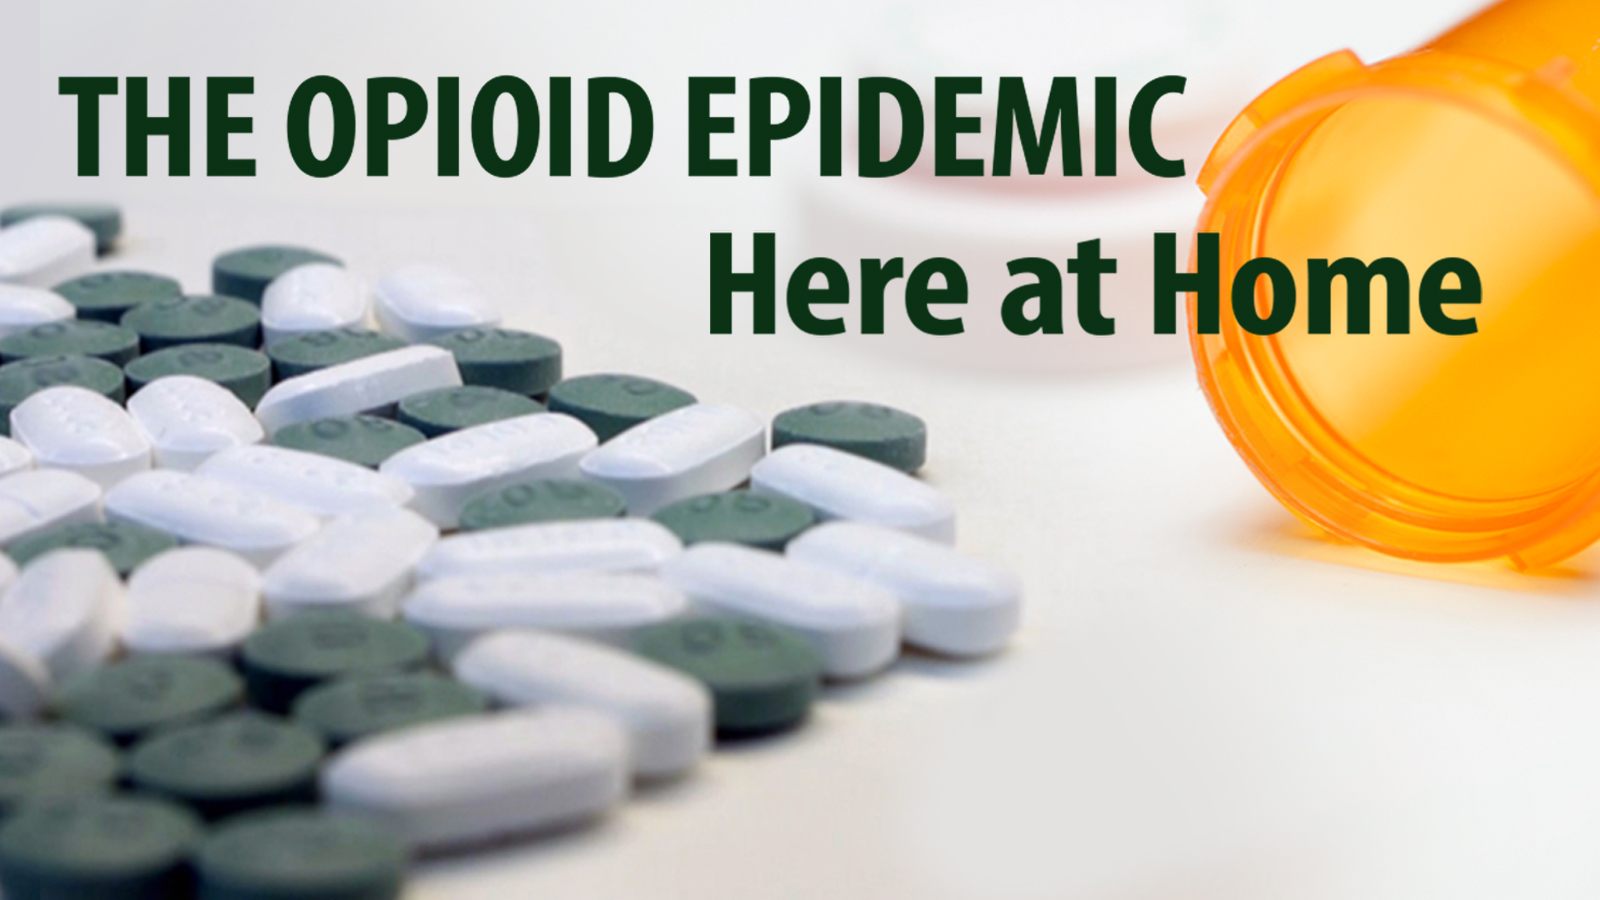 The Opioid Epidemic - Here at Home